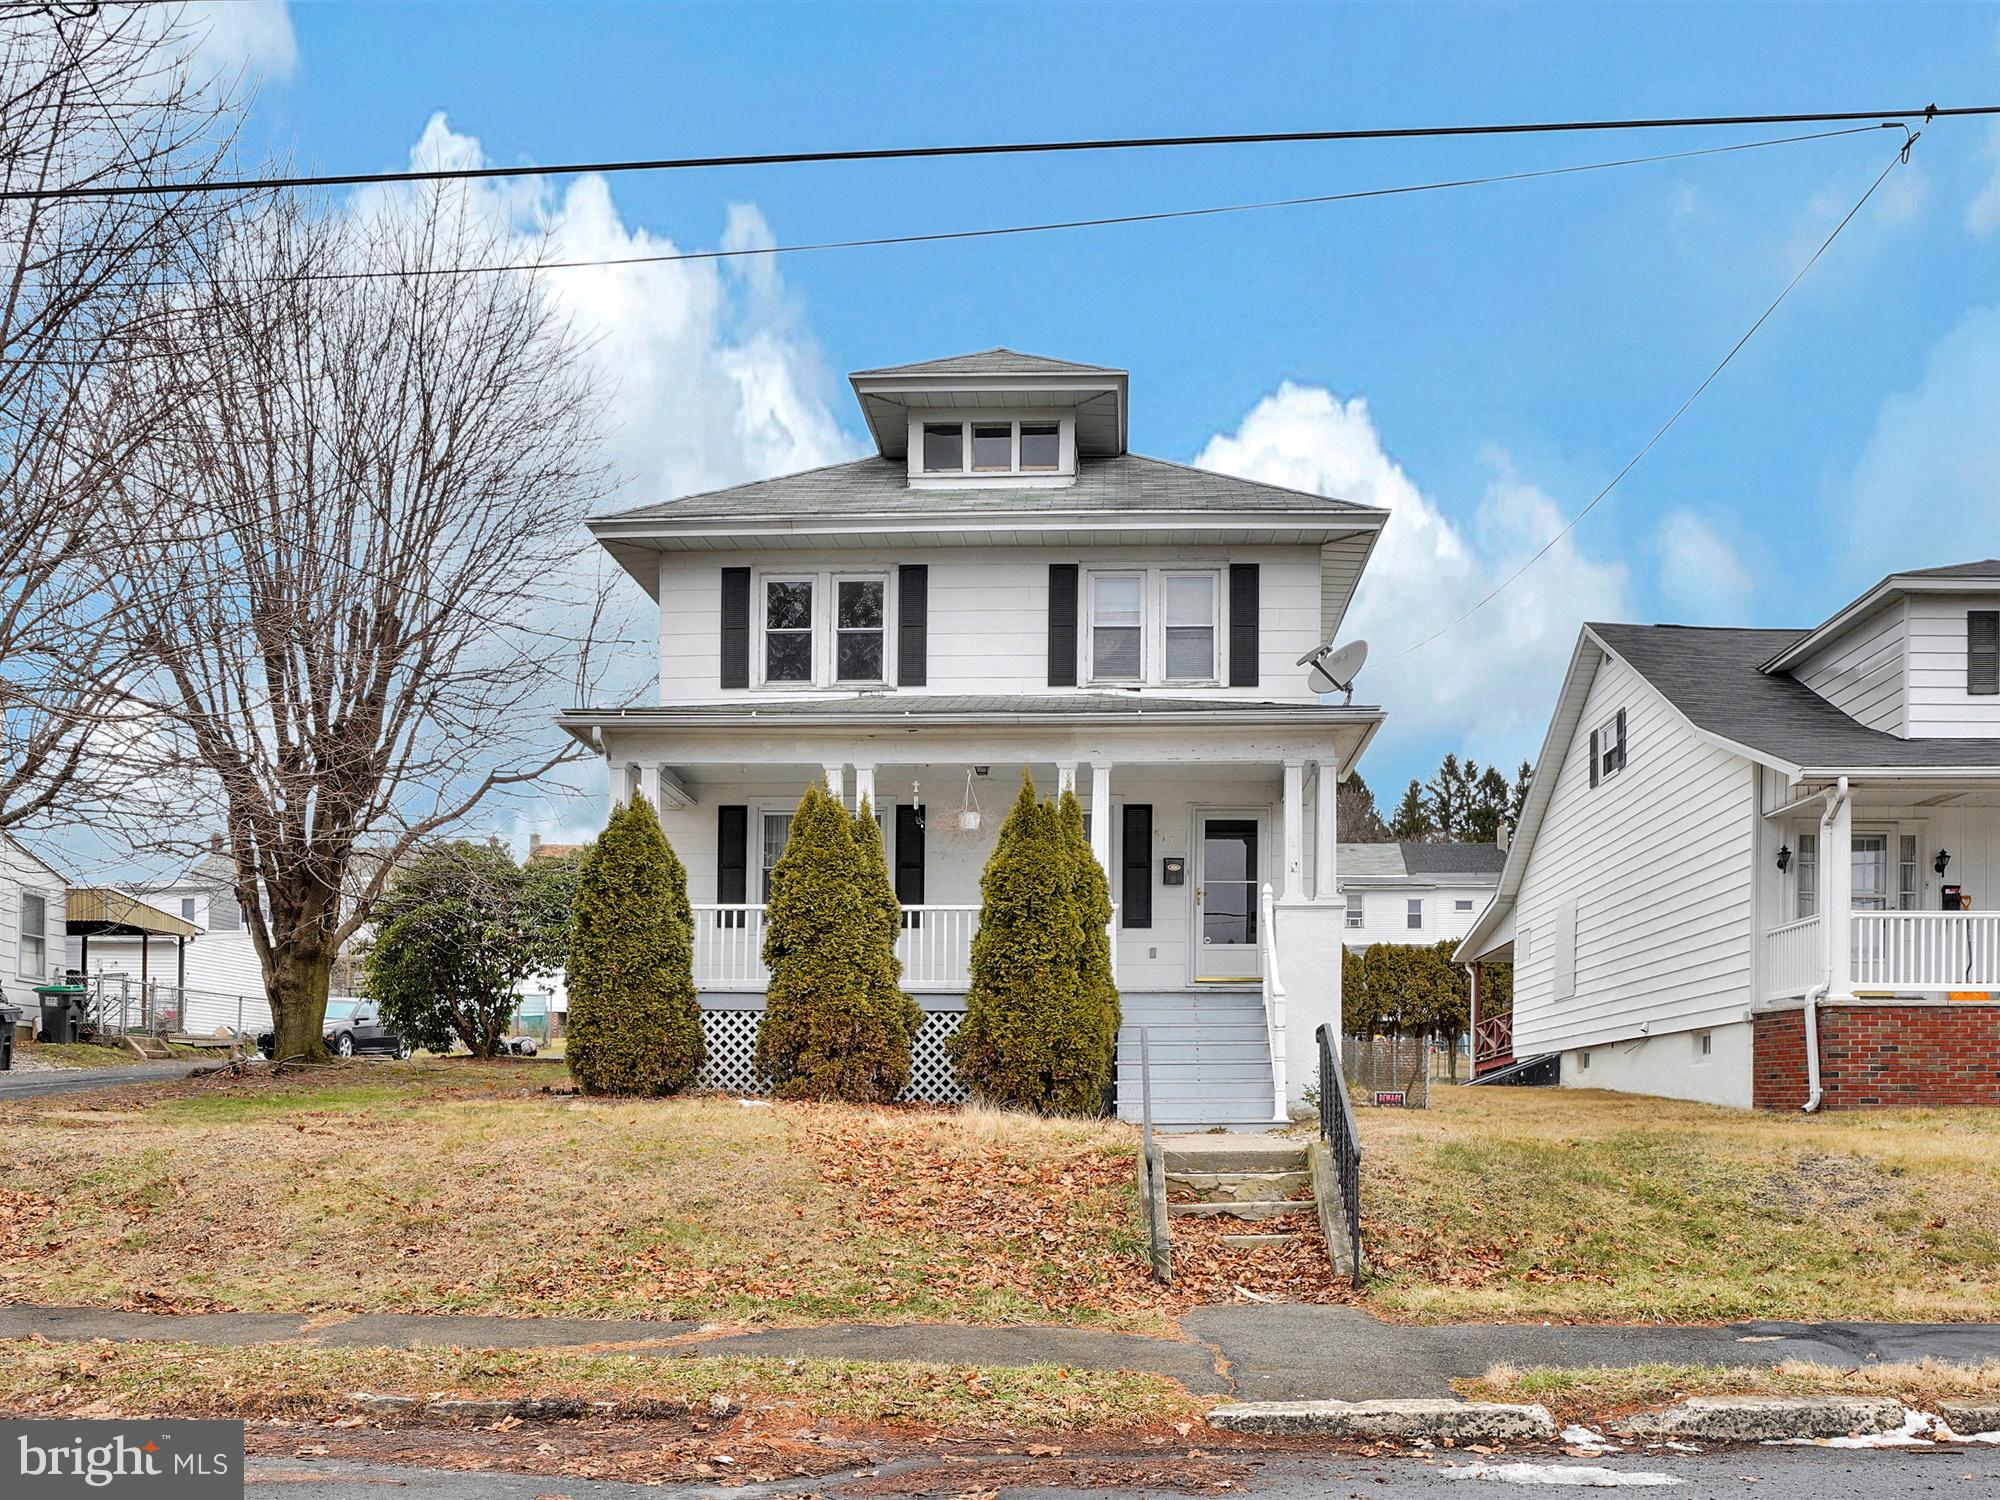 517 W WASHINGTON STREET, FRACKVILLE, PA 17931